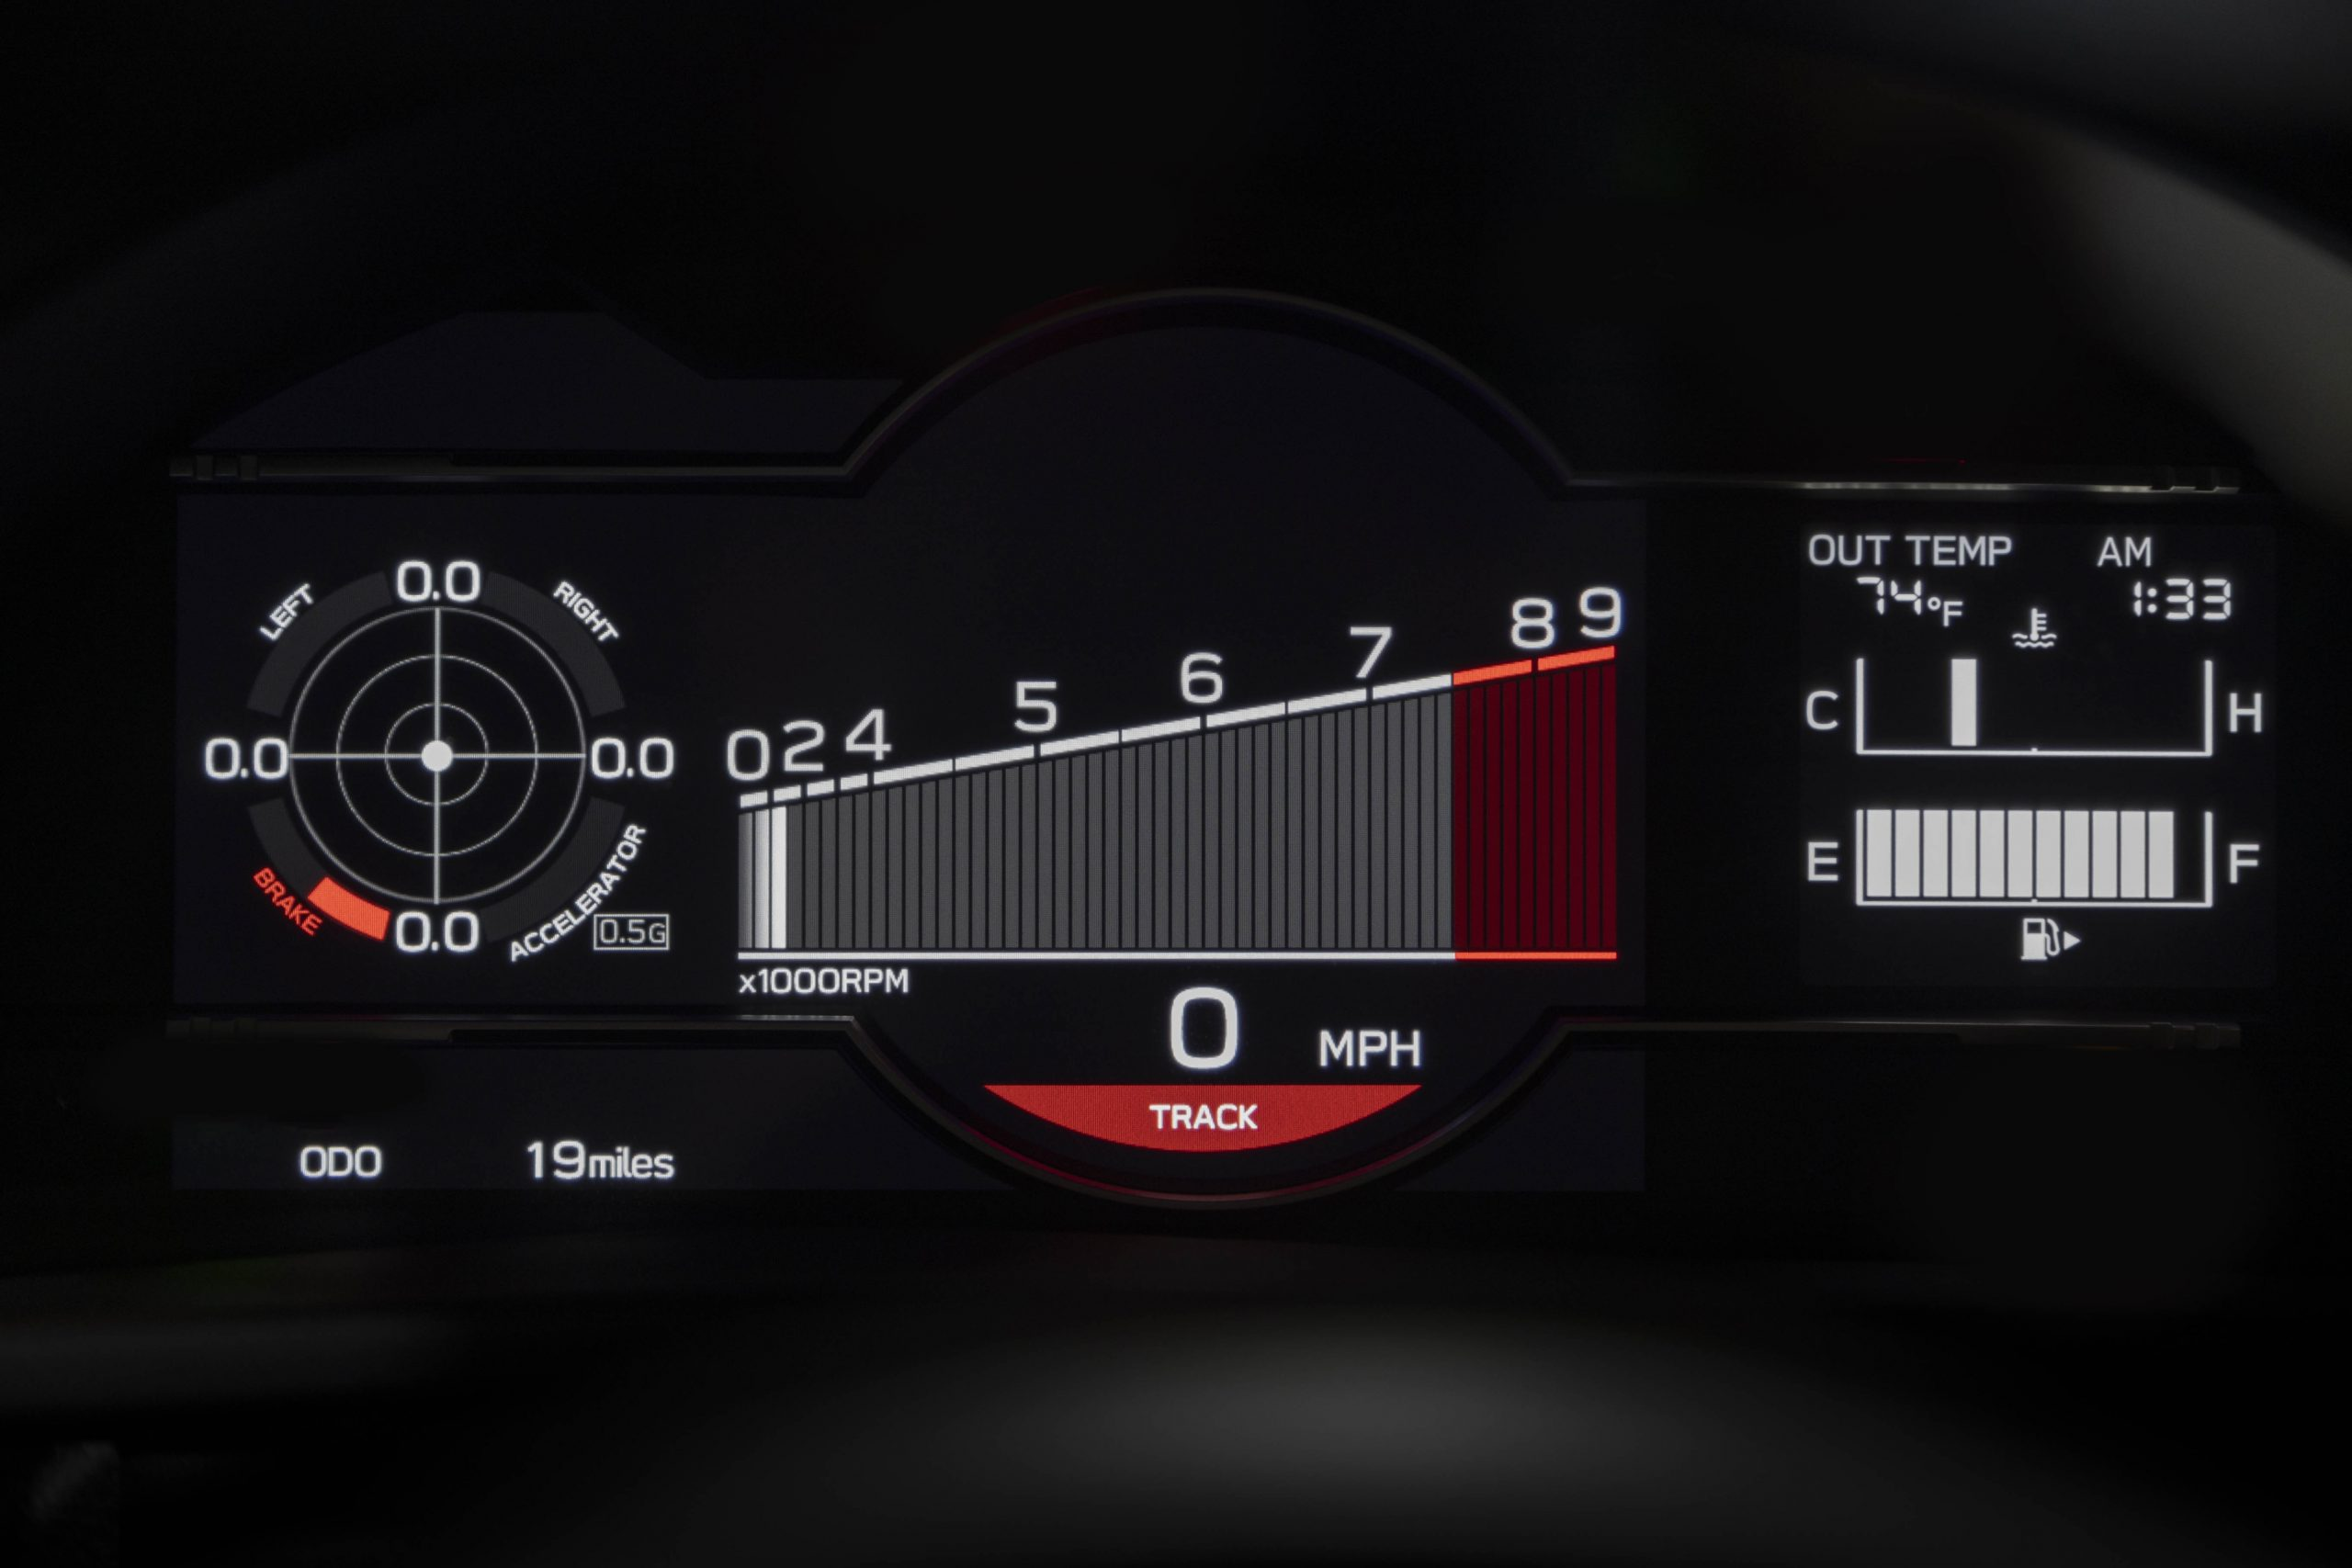 New 2022 Subaru BRZ tach digital guage